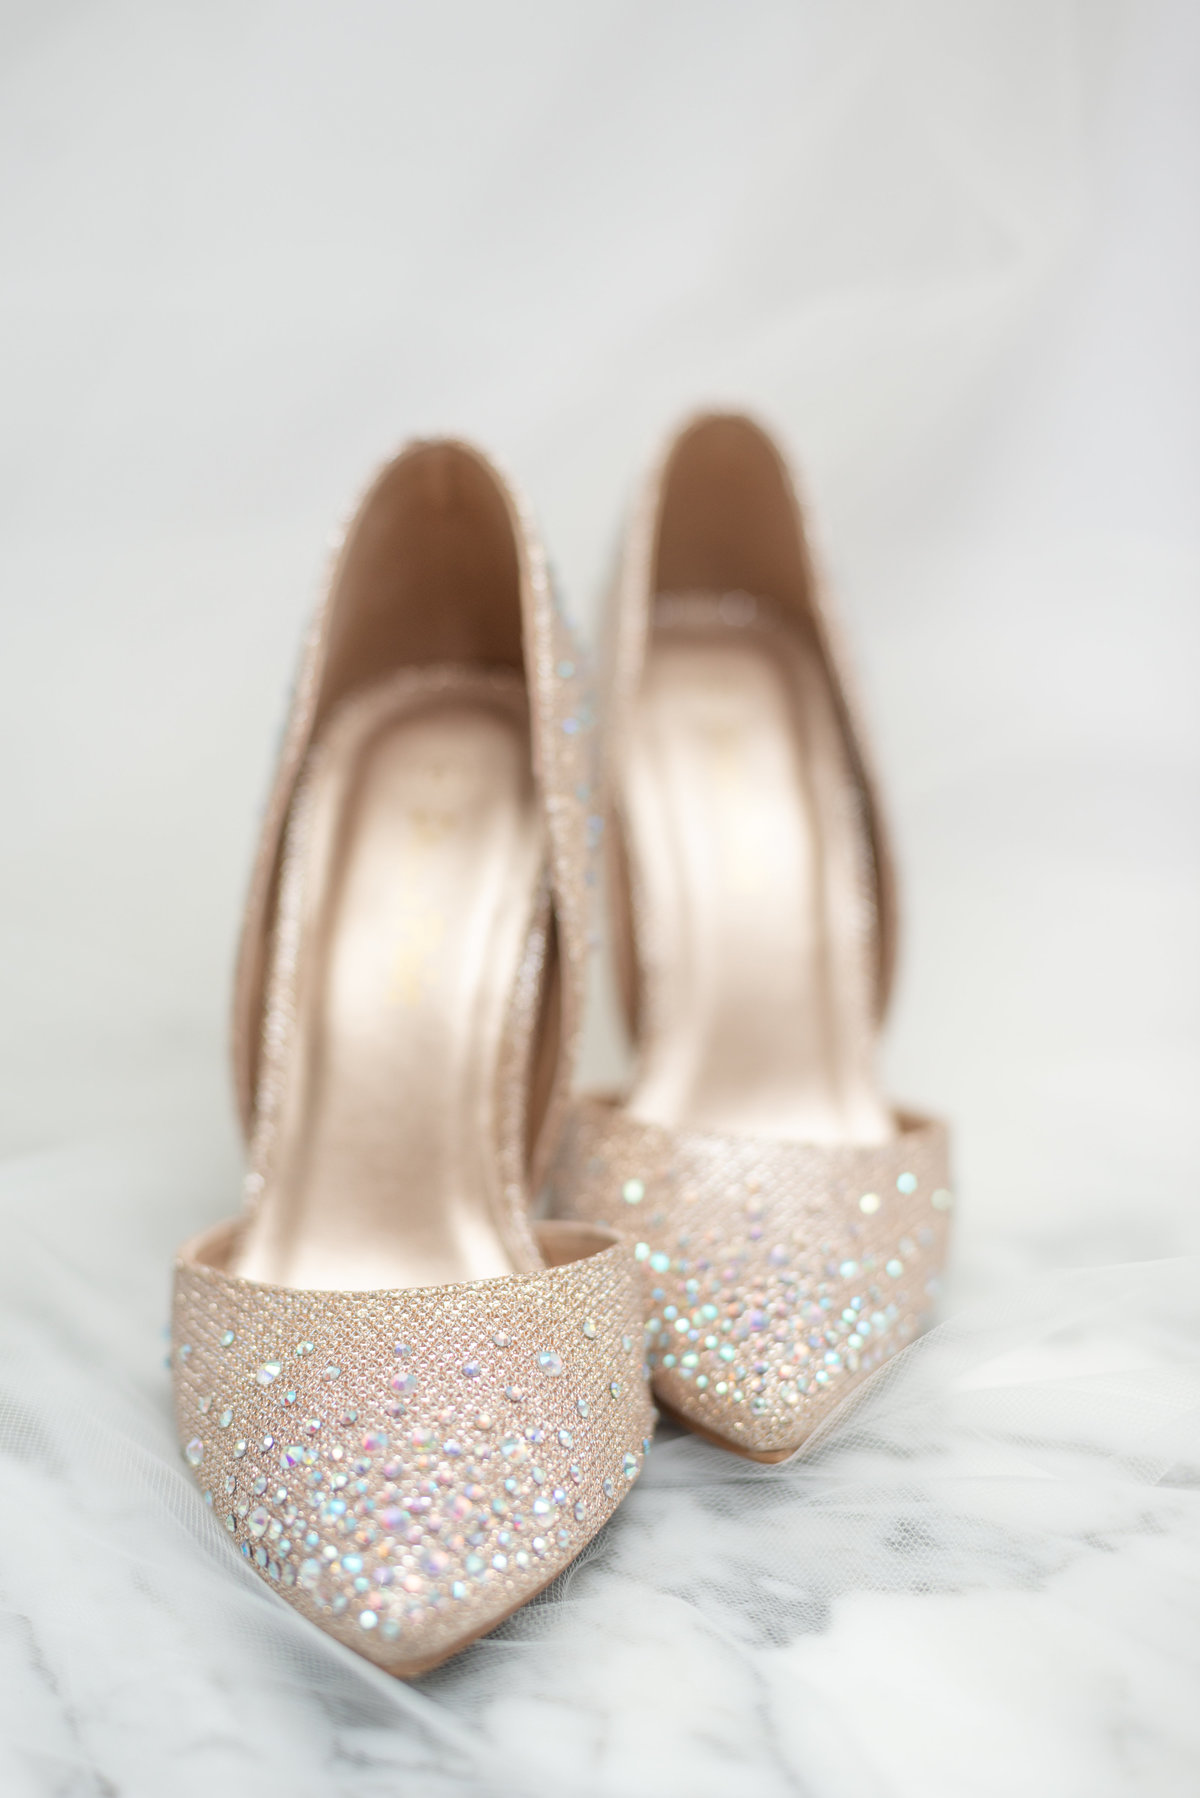 Sparkly wedding shoes from Amazon